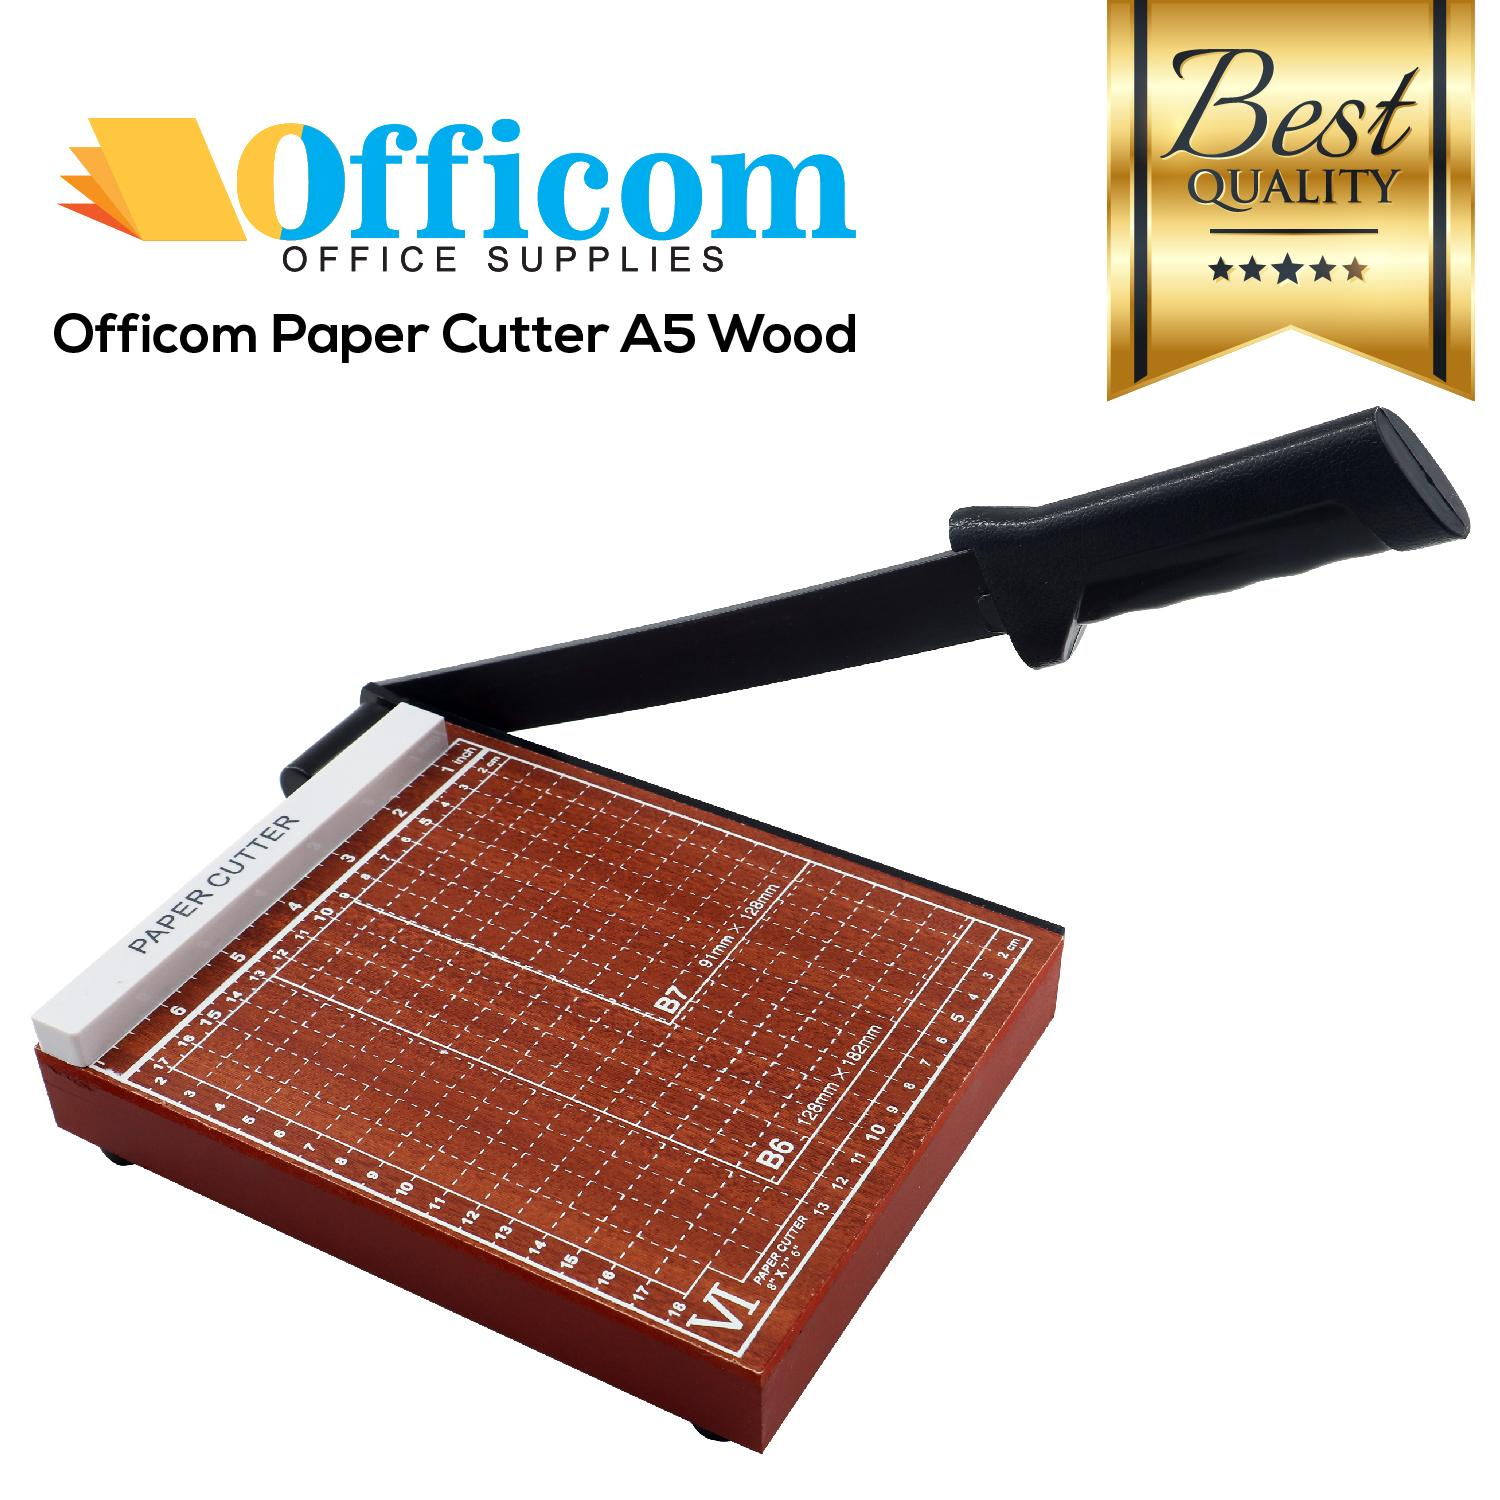 Officom Paper Cutter Wood A5 By Crystal Image.